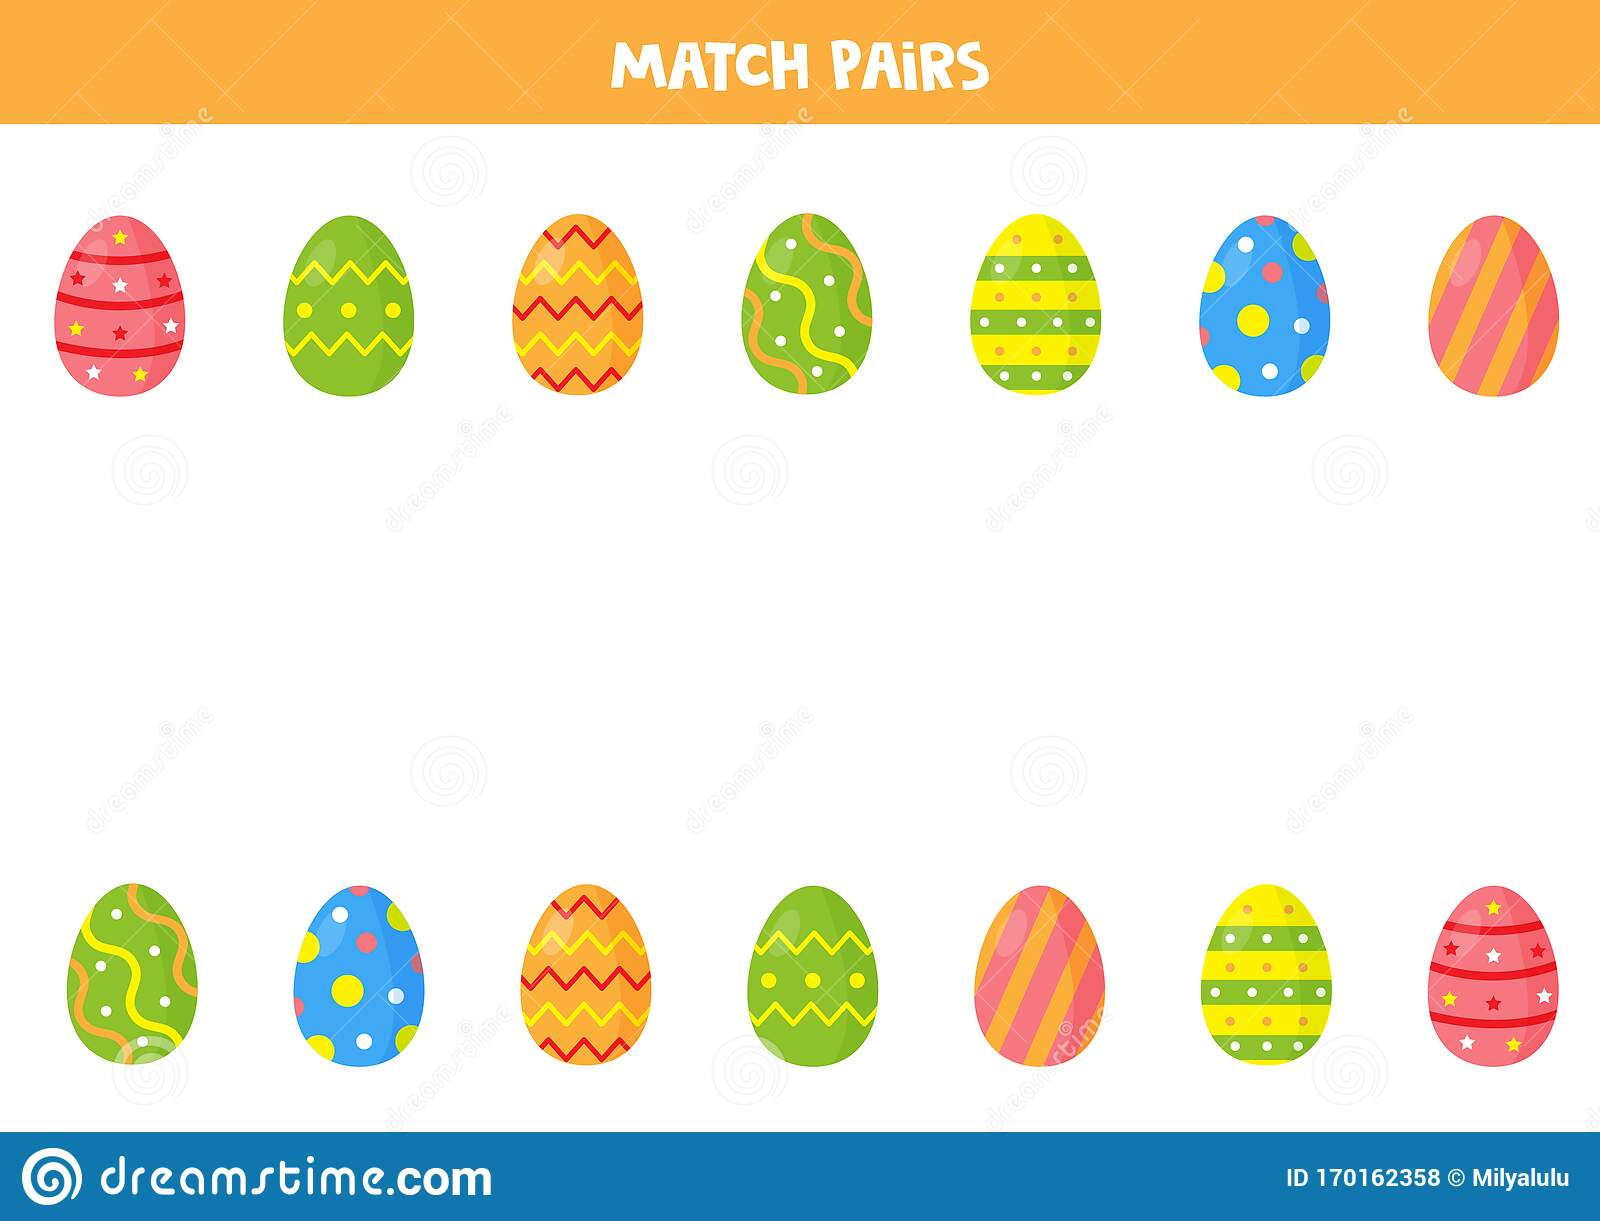 Easter Eggs Matching Game For Preschool Children Find